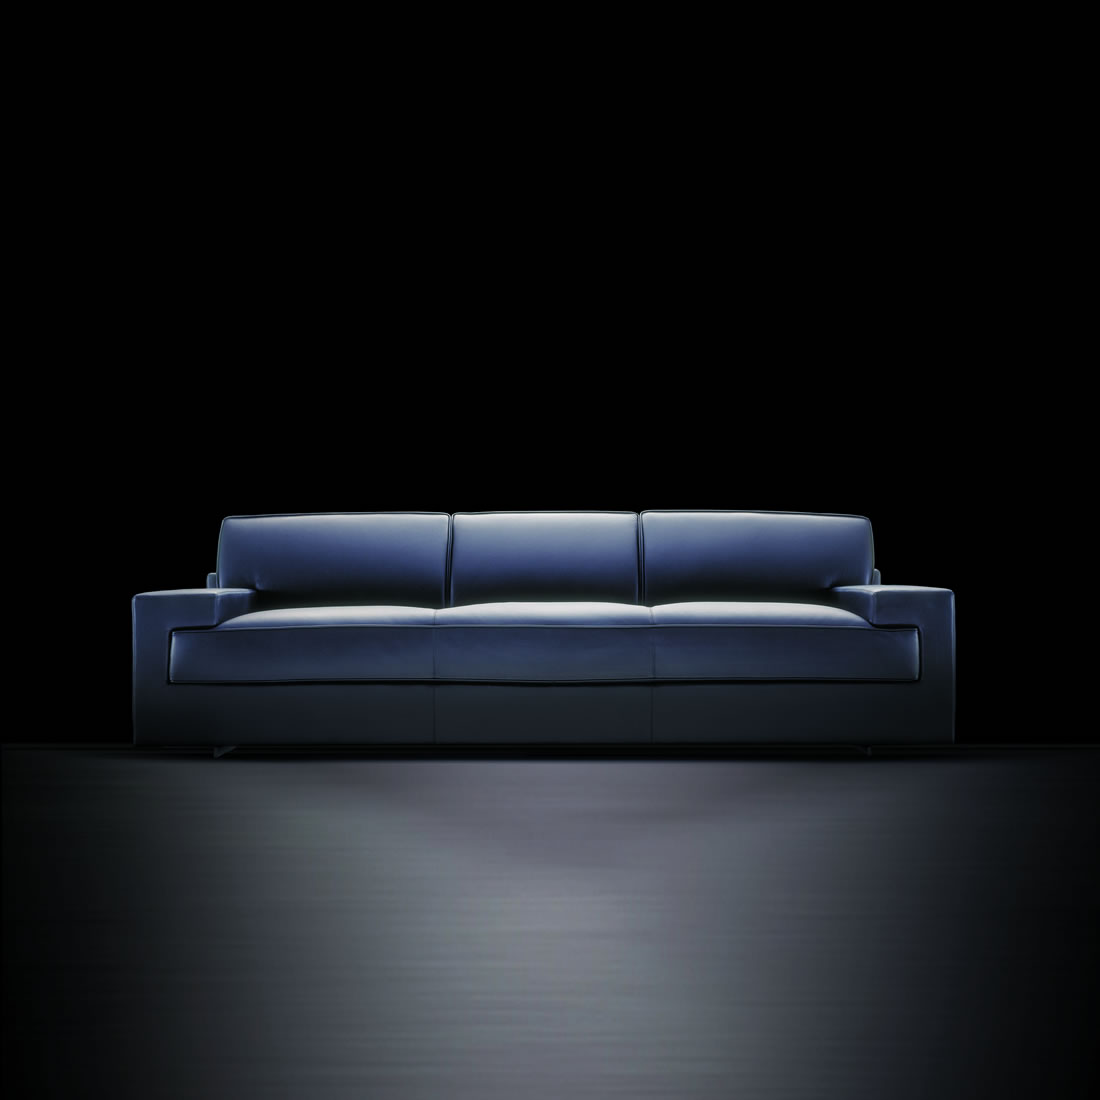 Ego Sofa 05 Gt Sofas Amp Sectionals Gt Products Vero Design